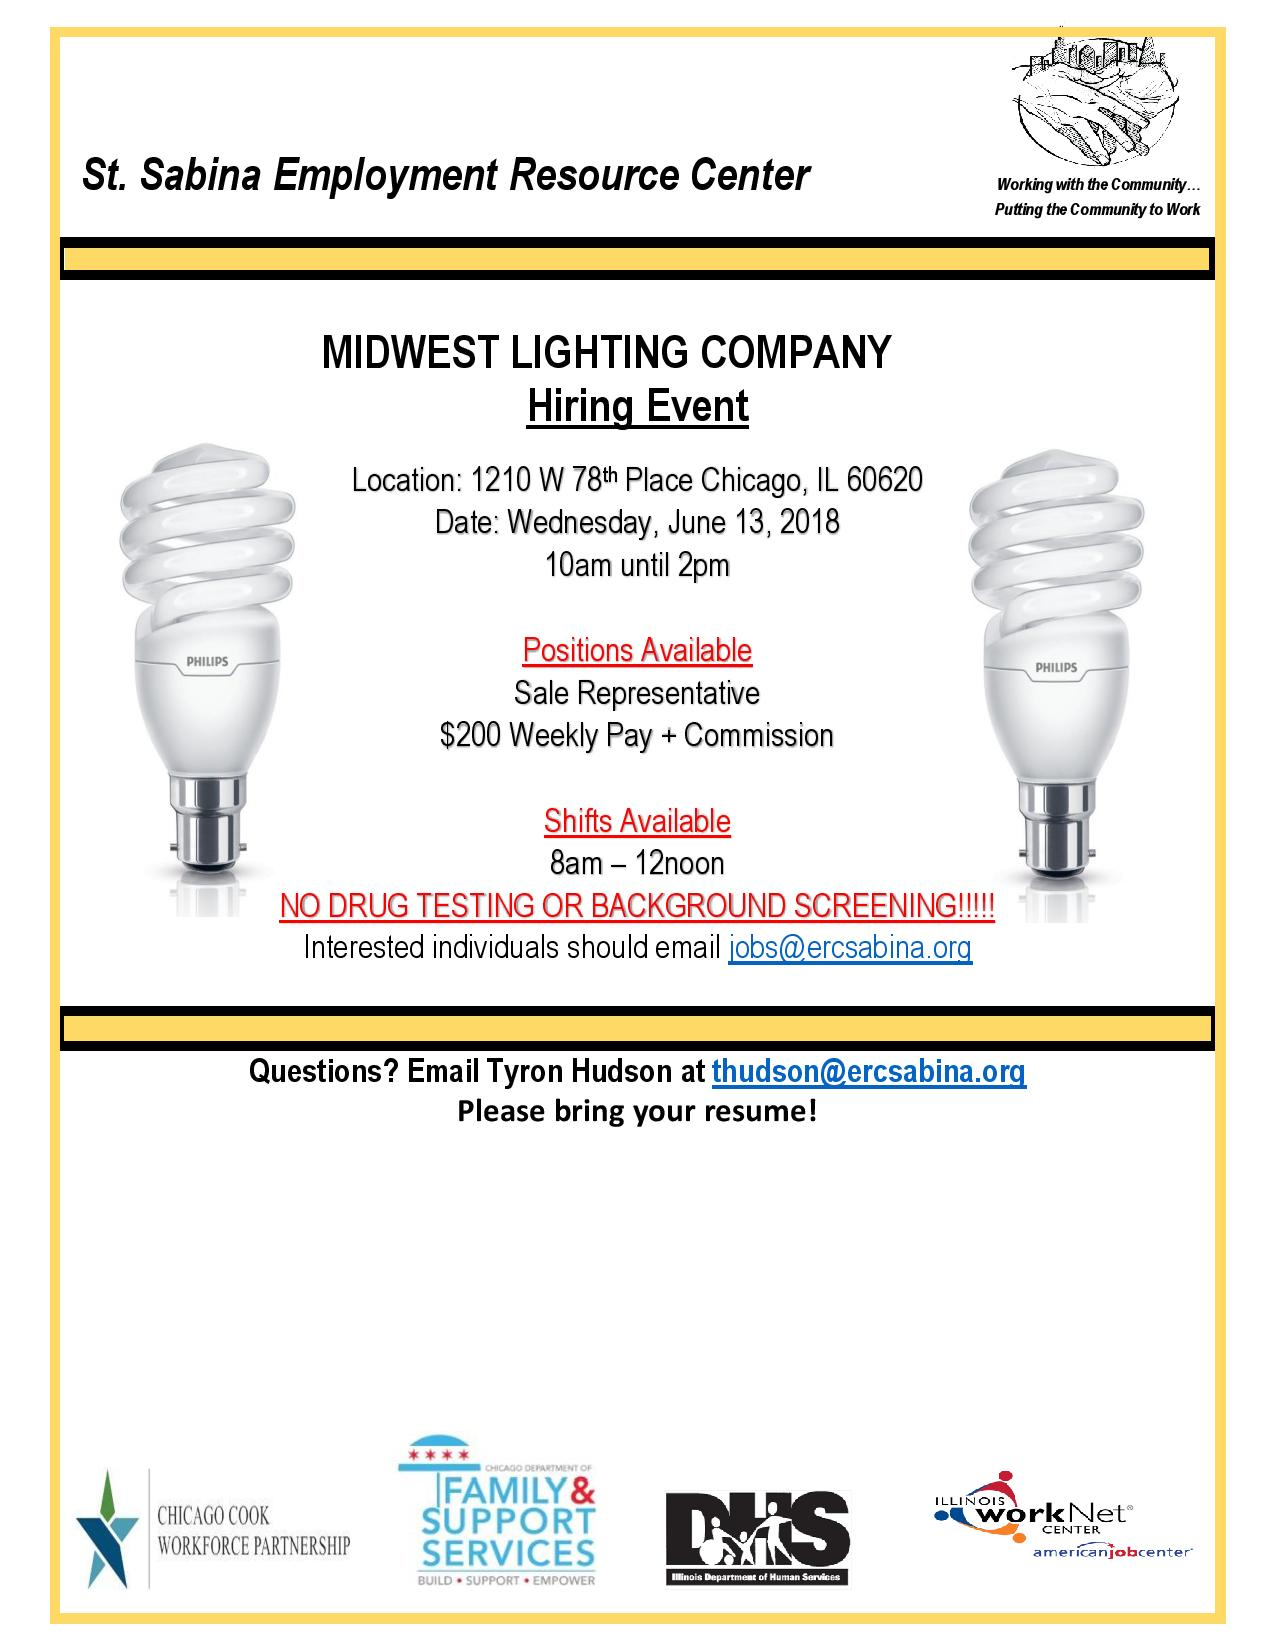 midwest lighting-page-001.jpg